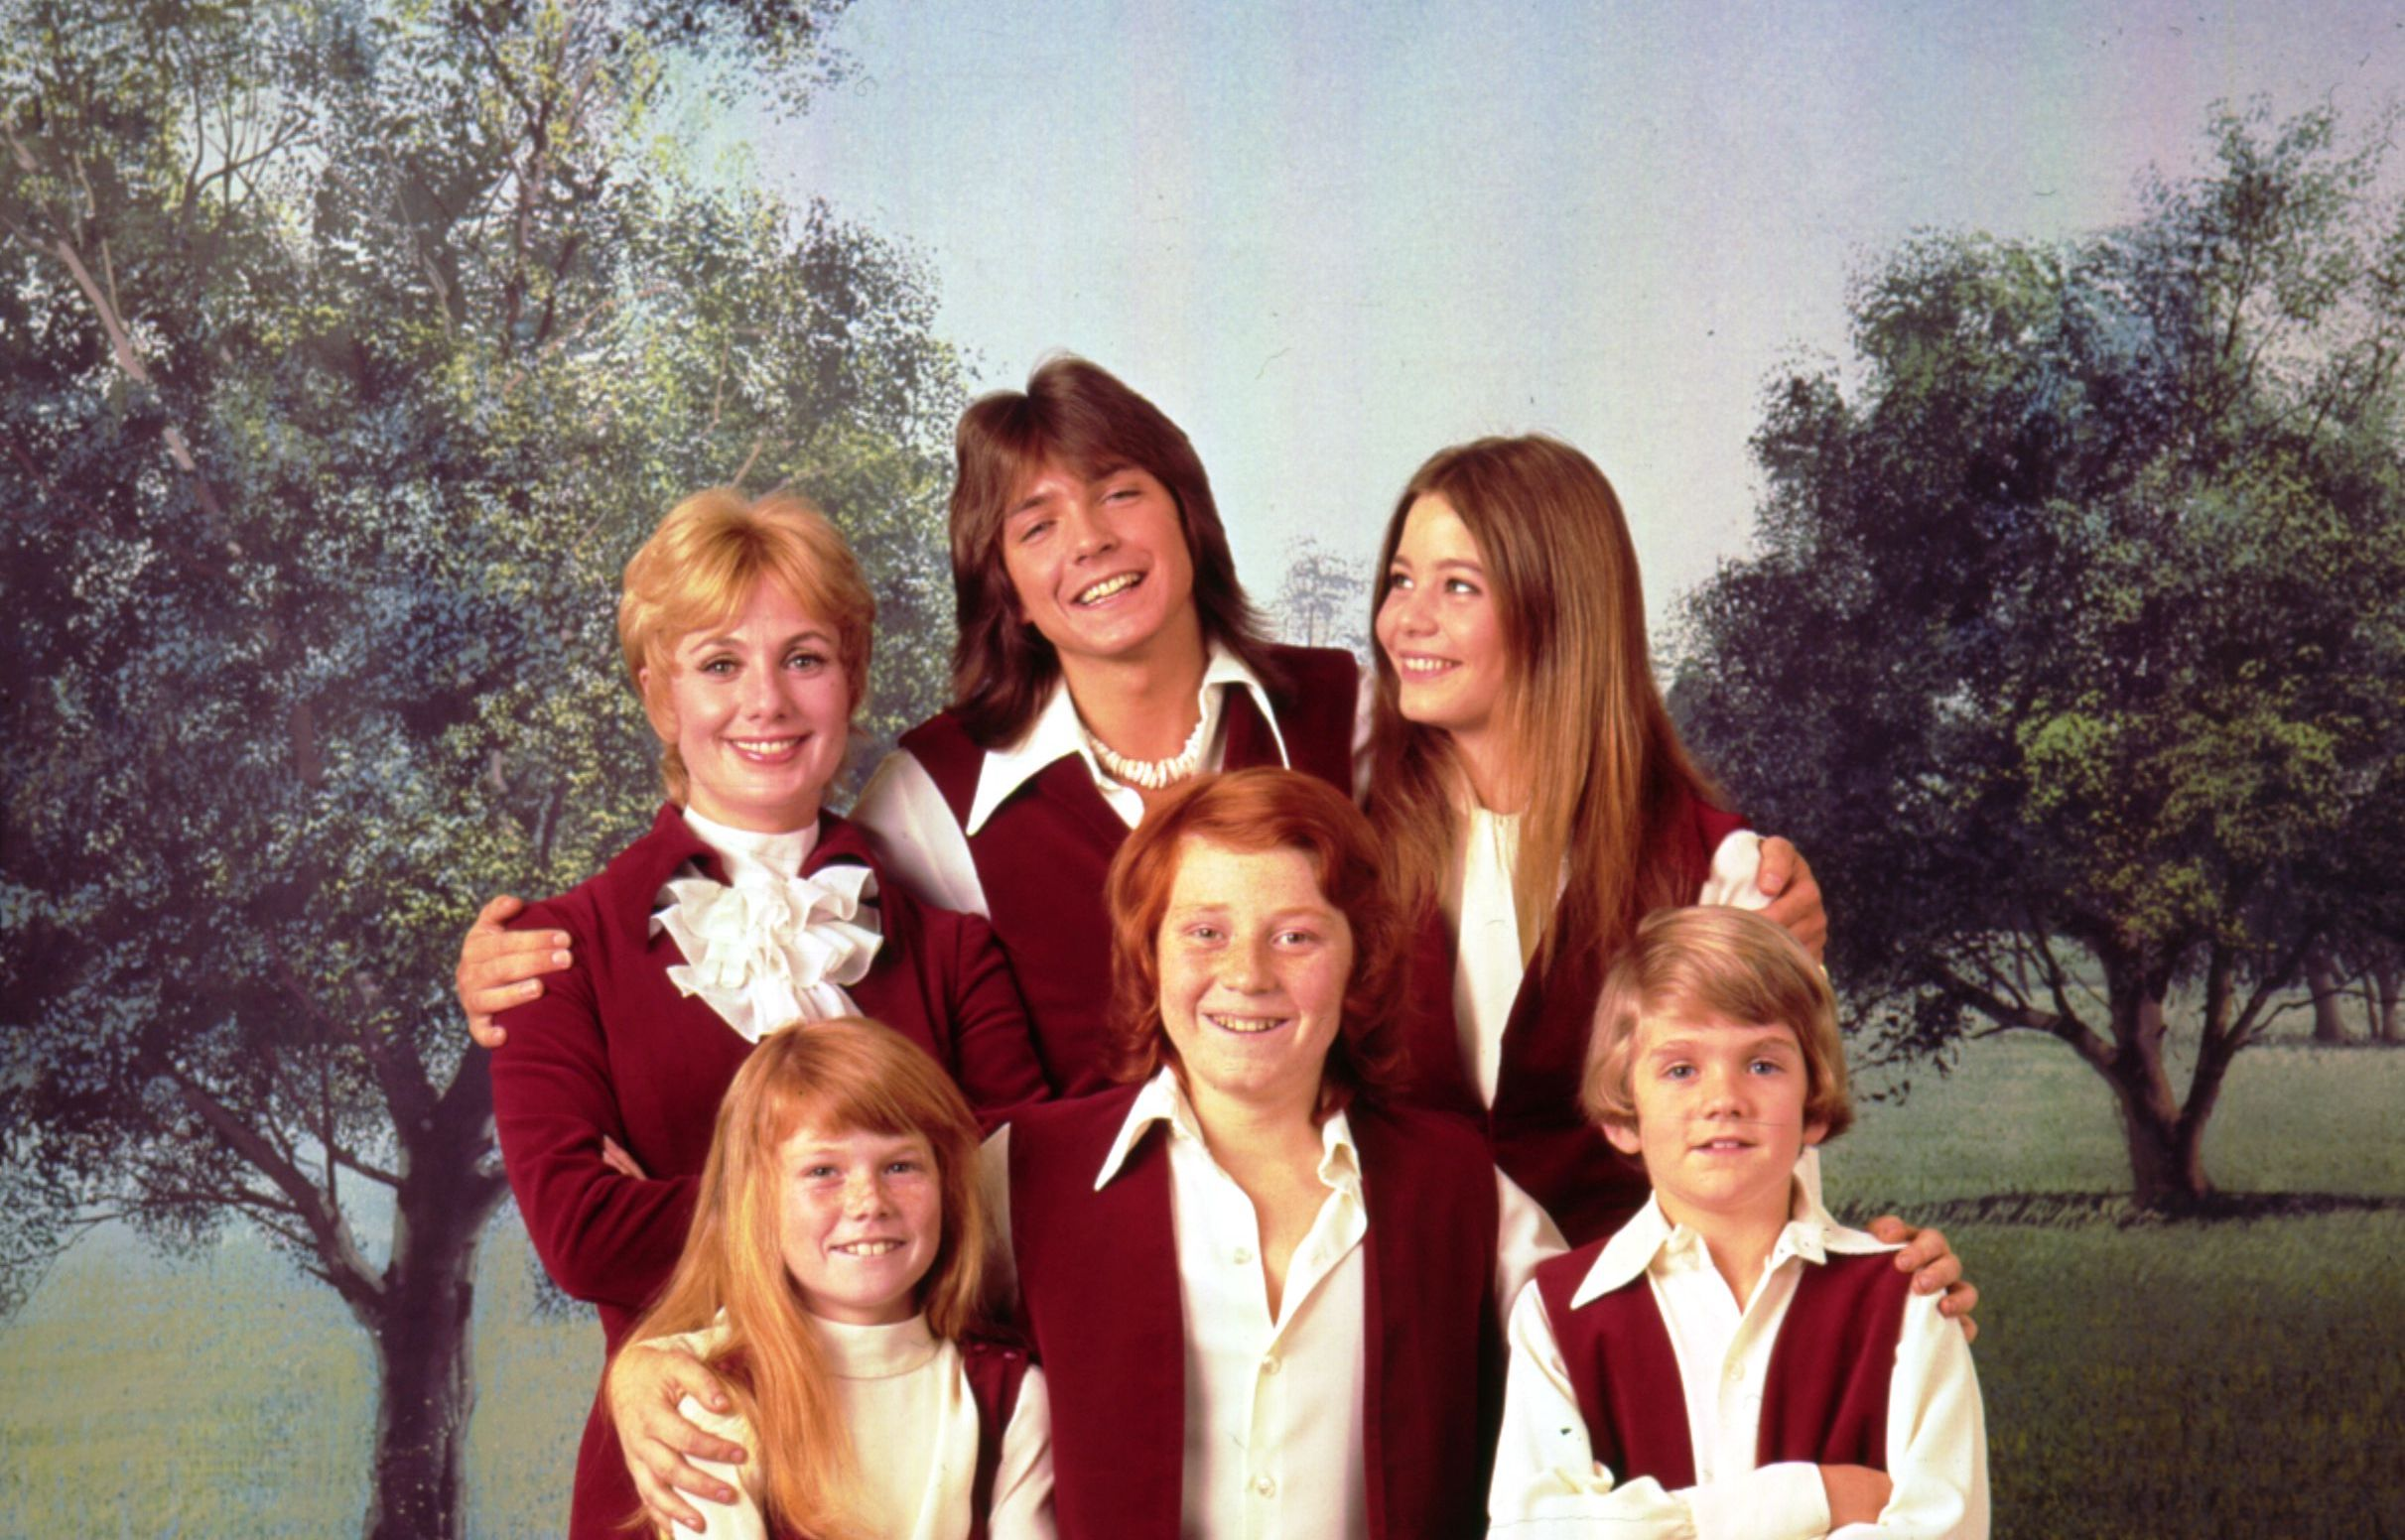 Image Credit: Getty Images / The Partridge Family poses for a photograph.